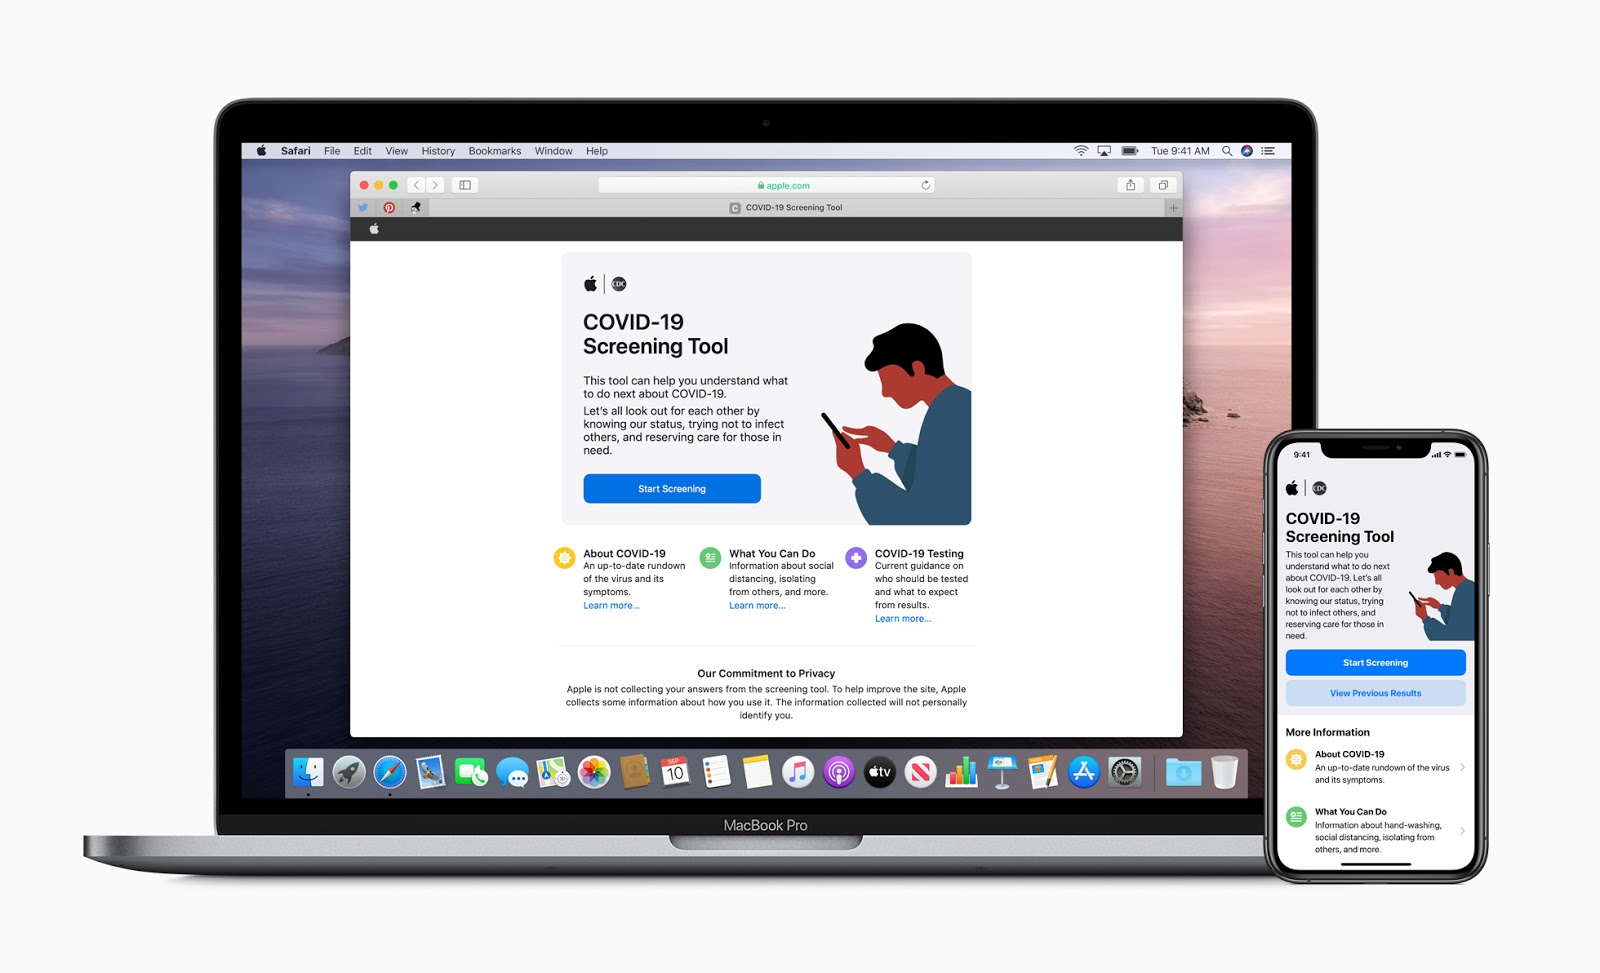 Apple Releases COVID-19 Screening Tool including App and Web Version